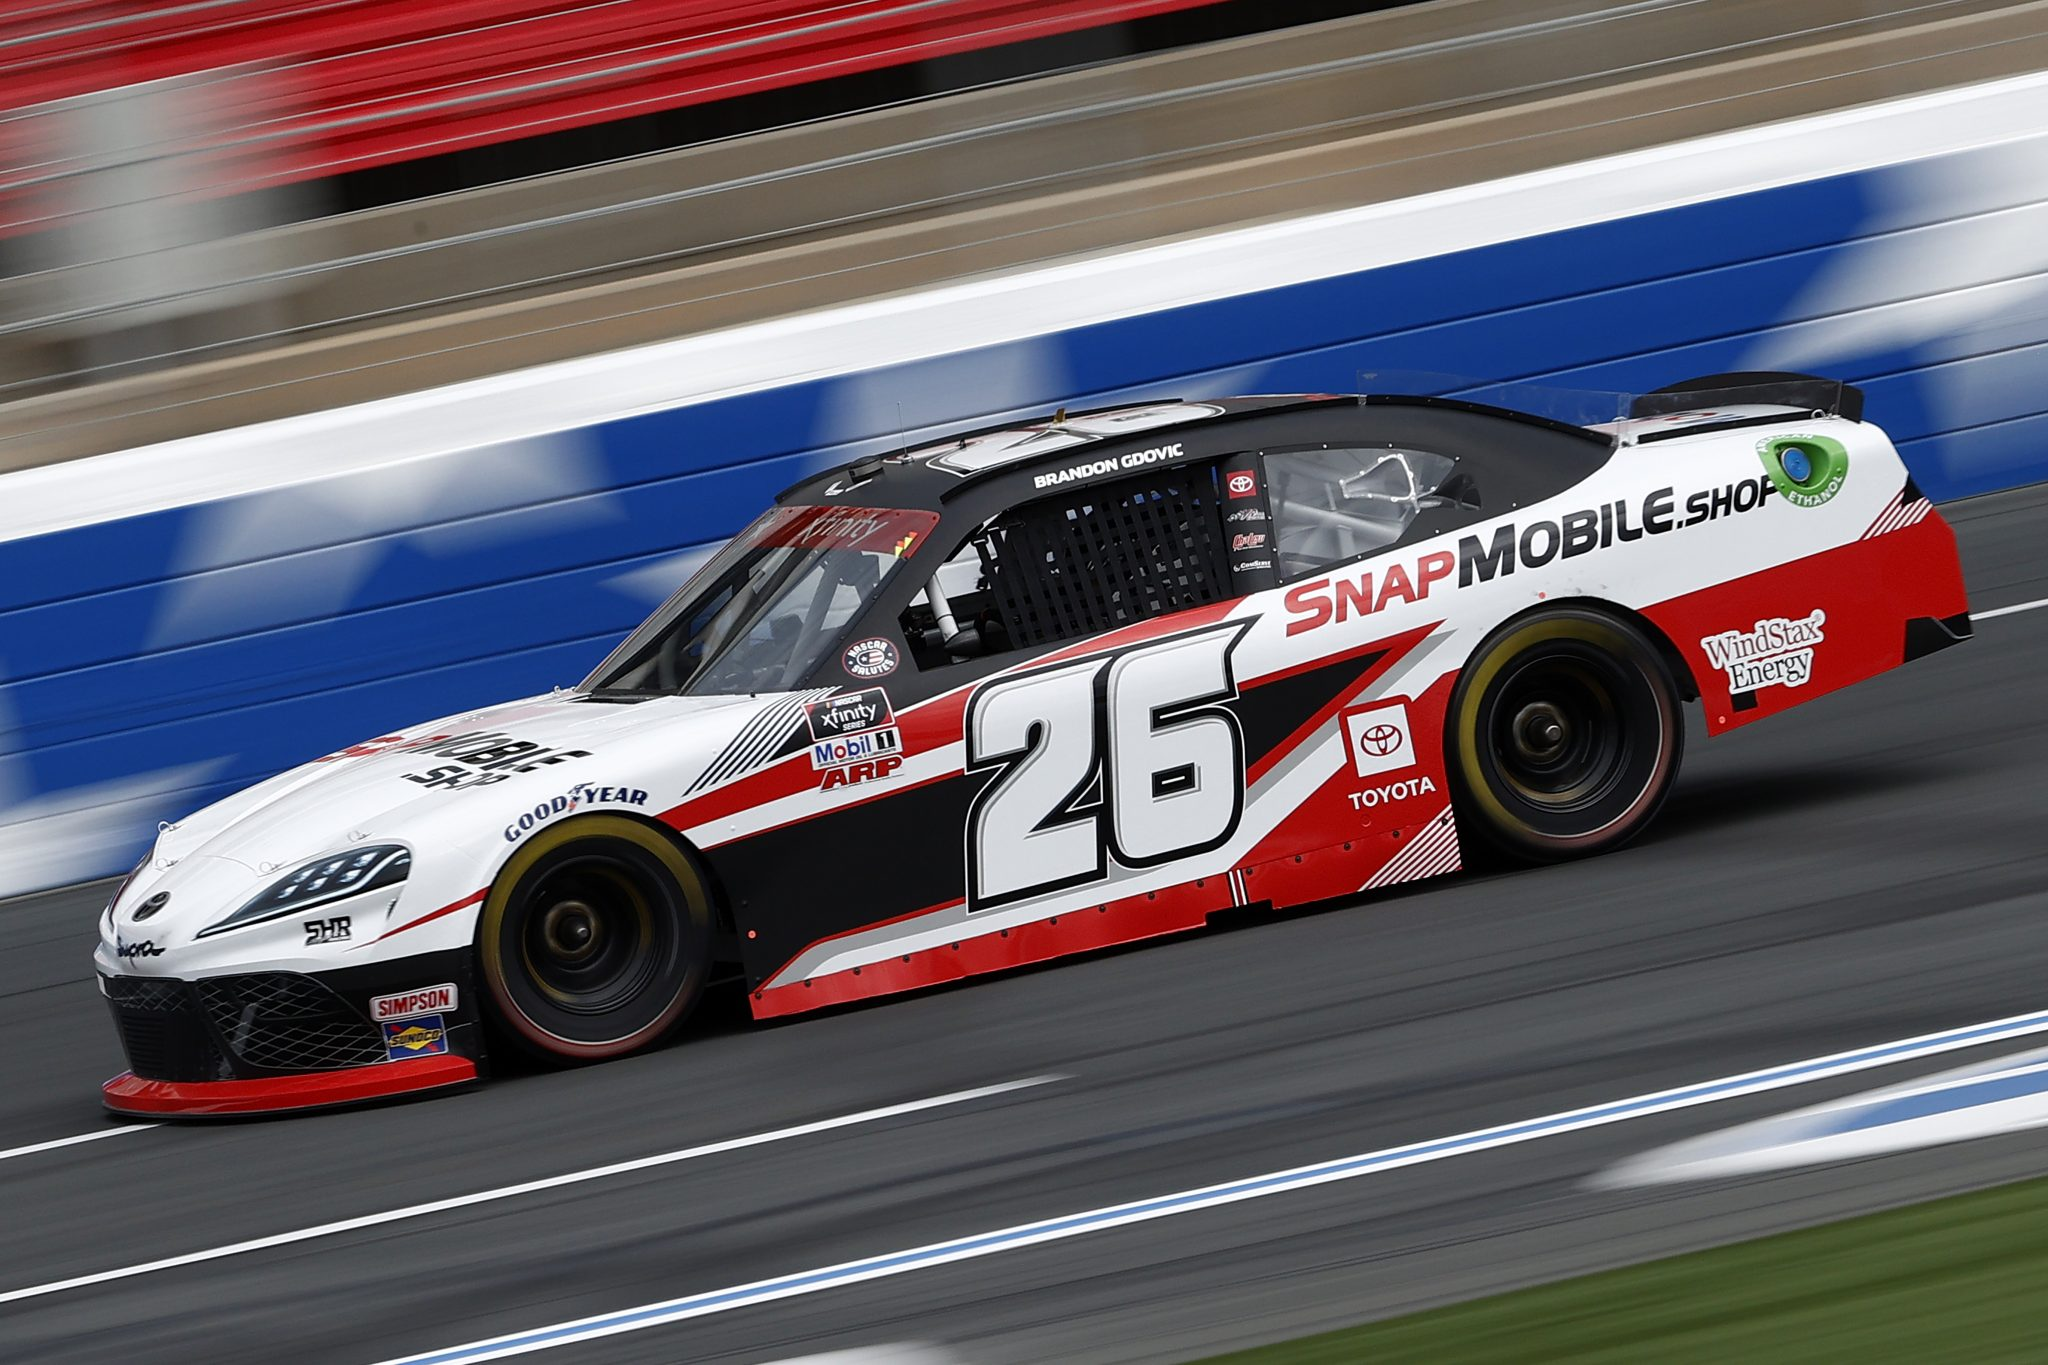 CONCORD, NORTH CAROLINA - MAY 28: Brandon Gdovic, driver of the #26 SnapMobile Toyota, drives during practice for the NASCAR Xfinity Series Alsco Uniforms 300 at Charlotte Motor Speedway on May 28, 2021 in Concord, North Carolina. (Photo by Maddie Meyer/Getty Images) | Getty Images